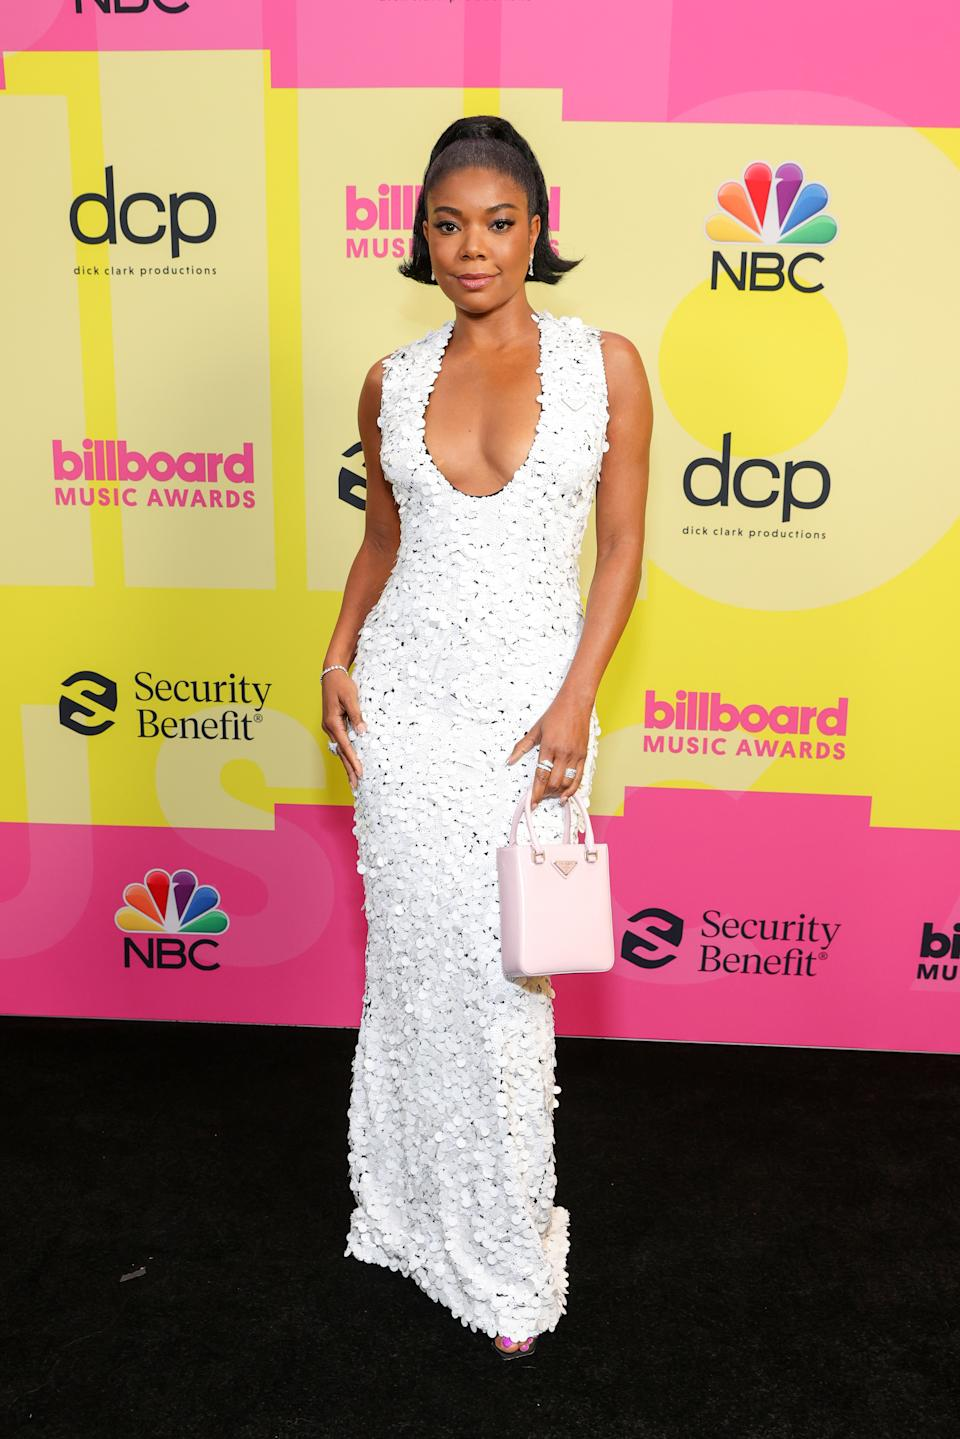 LOS ANGELES, CALIFORNIA - MAY 23: Gabrielle Union poses backstage for the 2021 Billboard Music Awards, broadcast on May 23, 2021 at Microsoft Theater in Los Angeles, California. (Photo by Rich Fury/Getty Images for dcp)